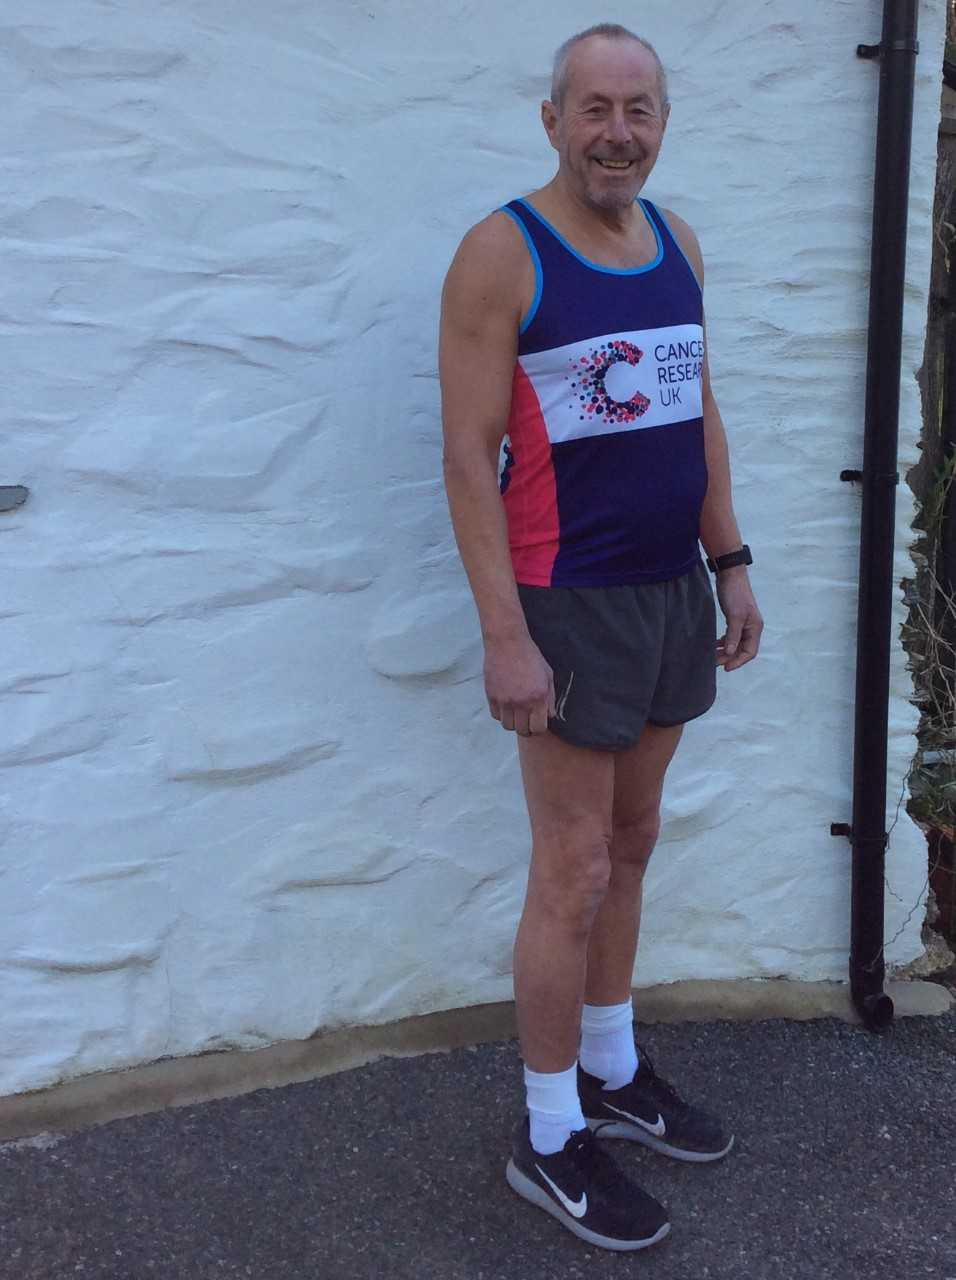 Newport mayor, John Edwards, is running in today's London Marathon to raise money for Cancer Research UK.